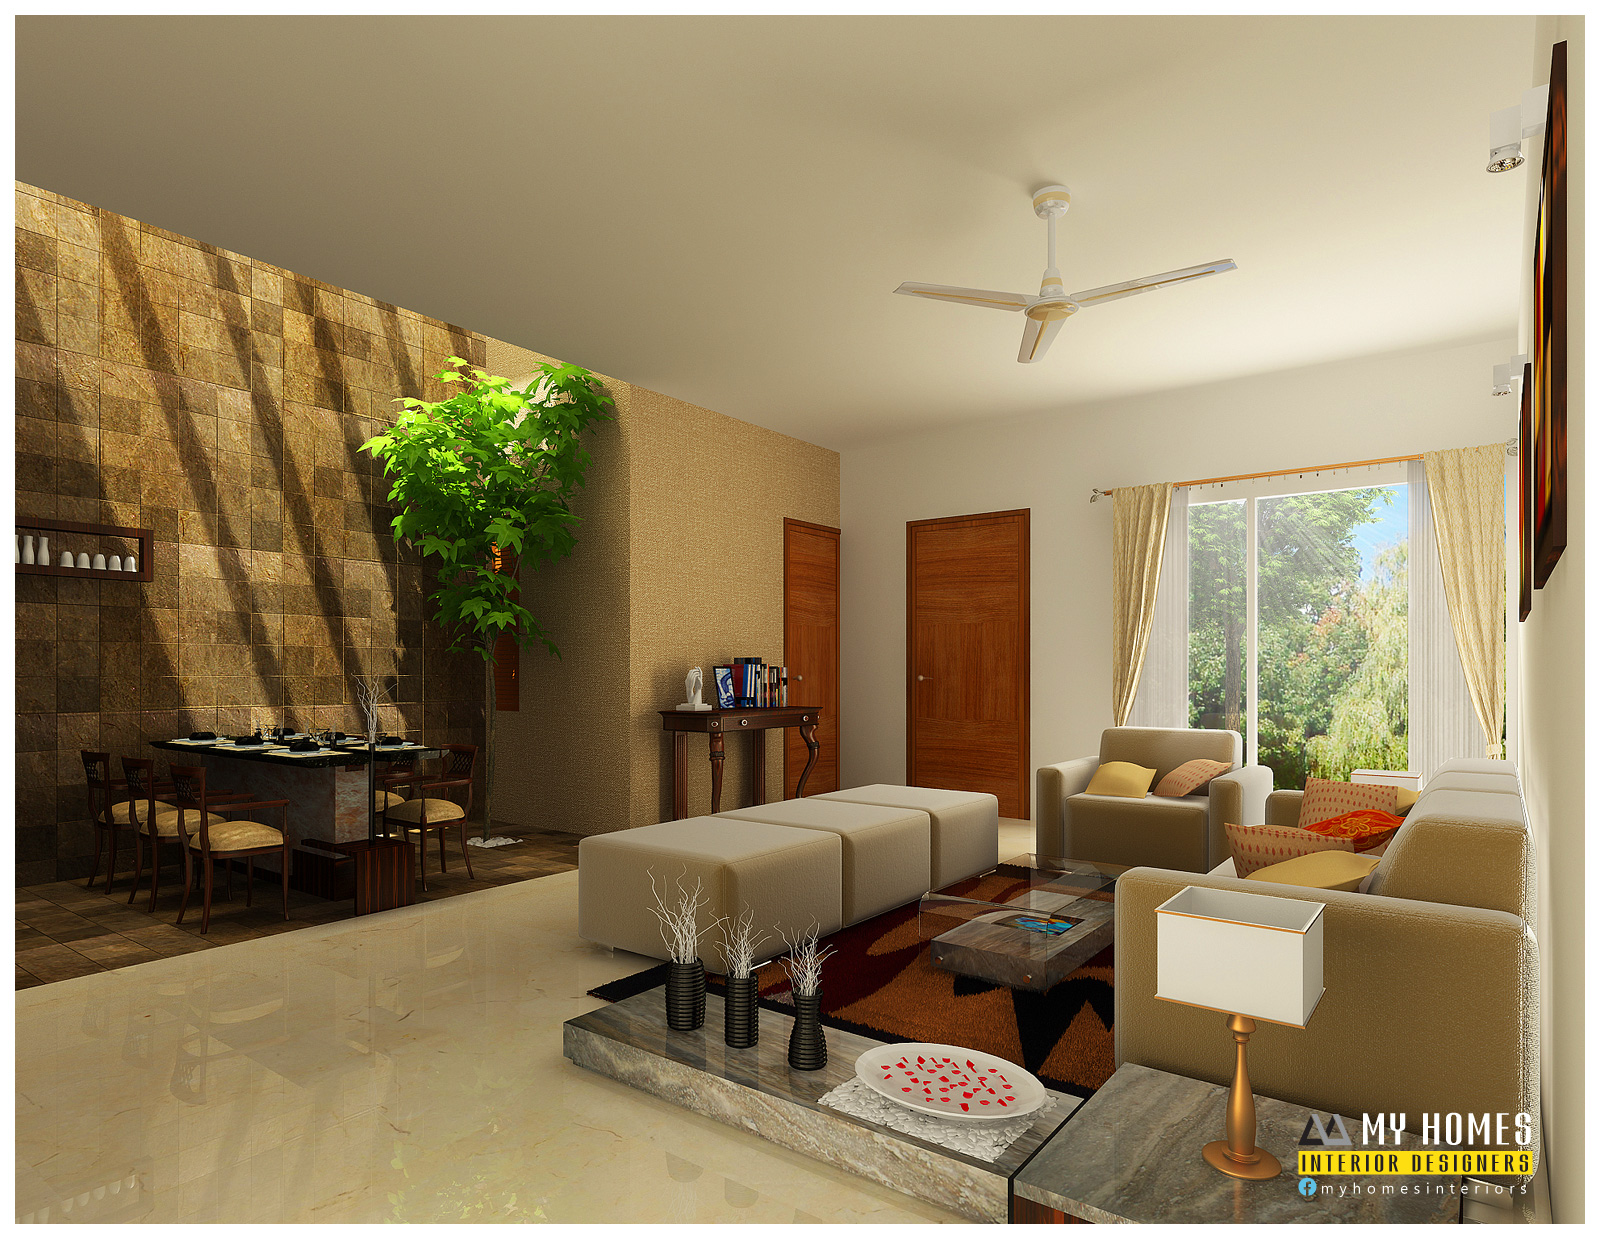 Kerala interior design ideas from designing company thrissur for Interior house decoration ideas